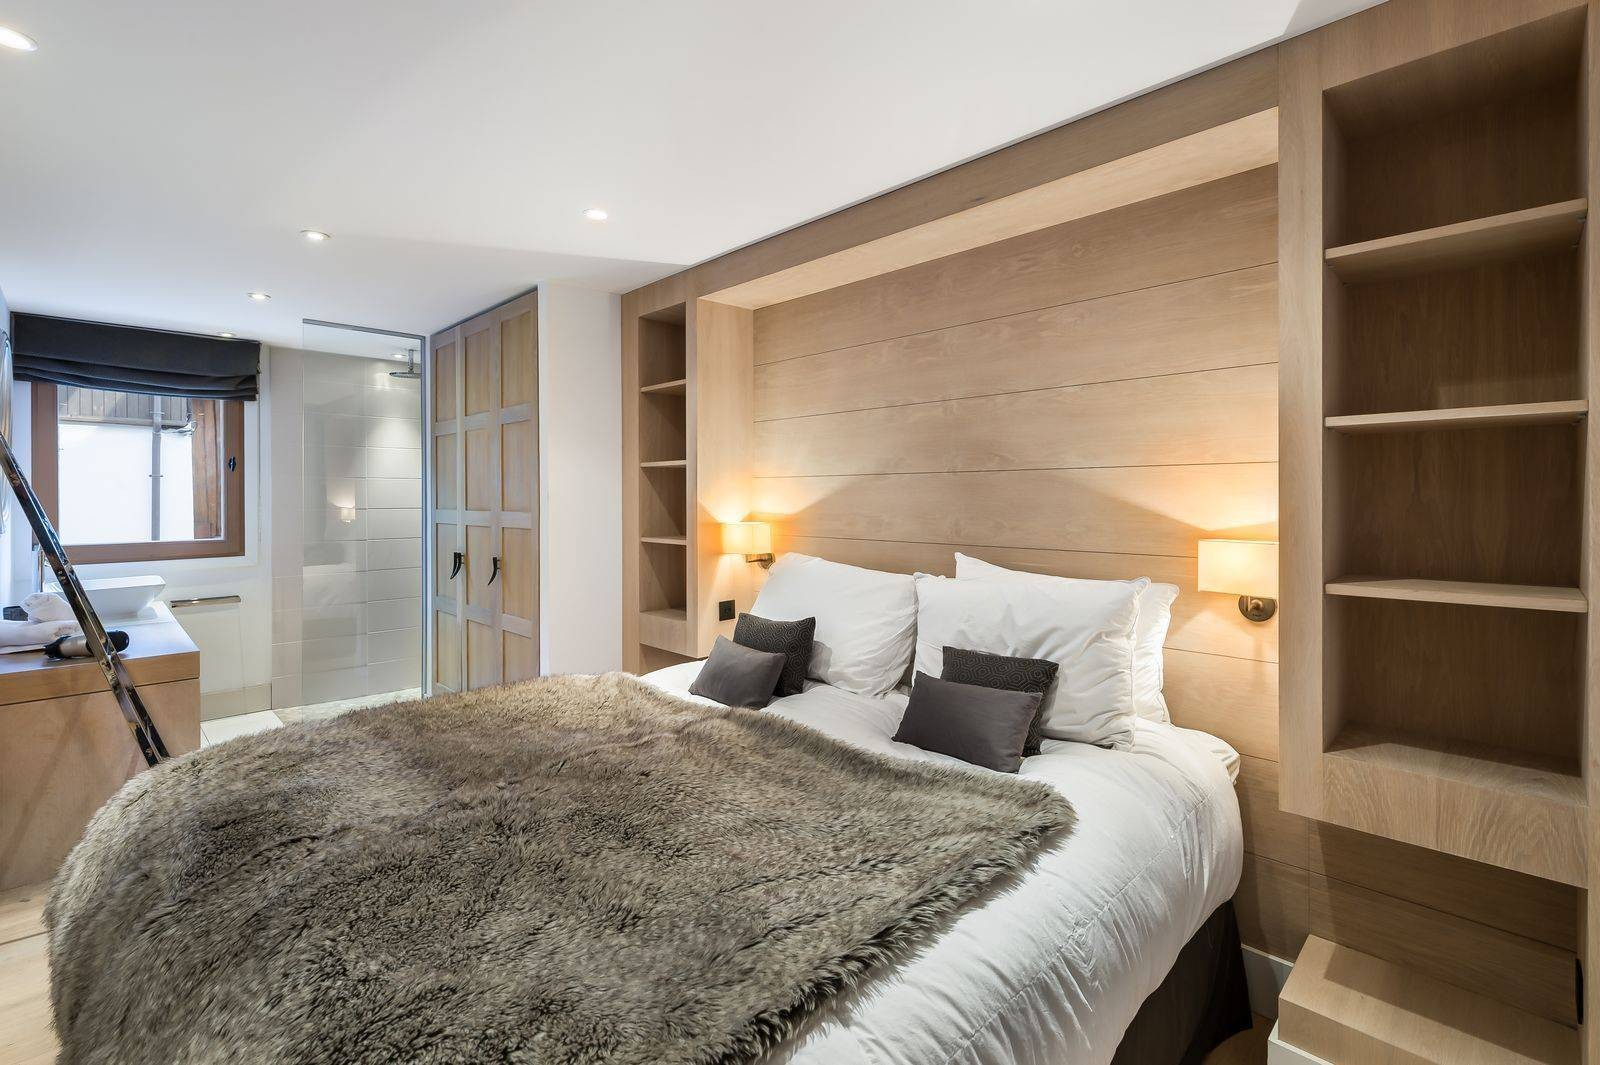 Courchevel 1300 Location Chalet Luxe Nibate Chambre